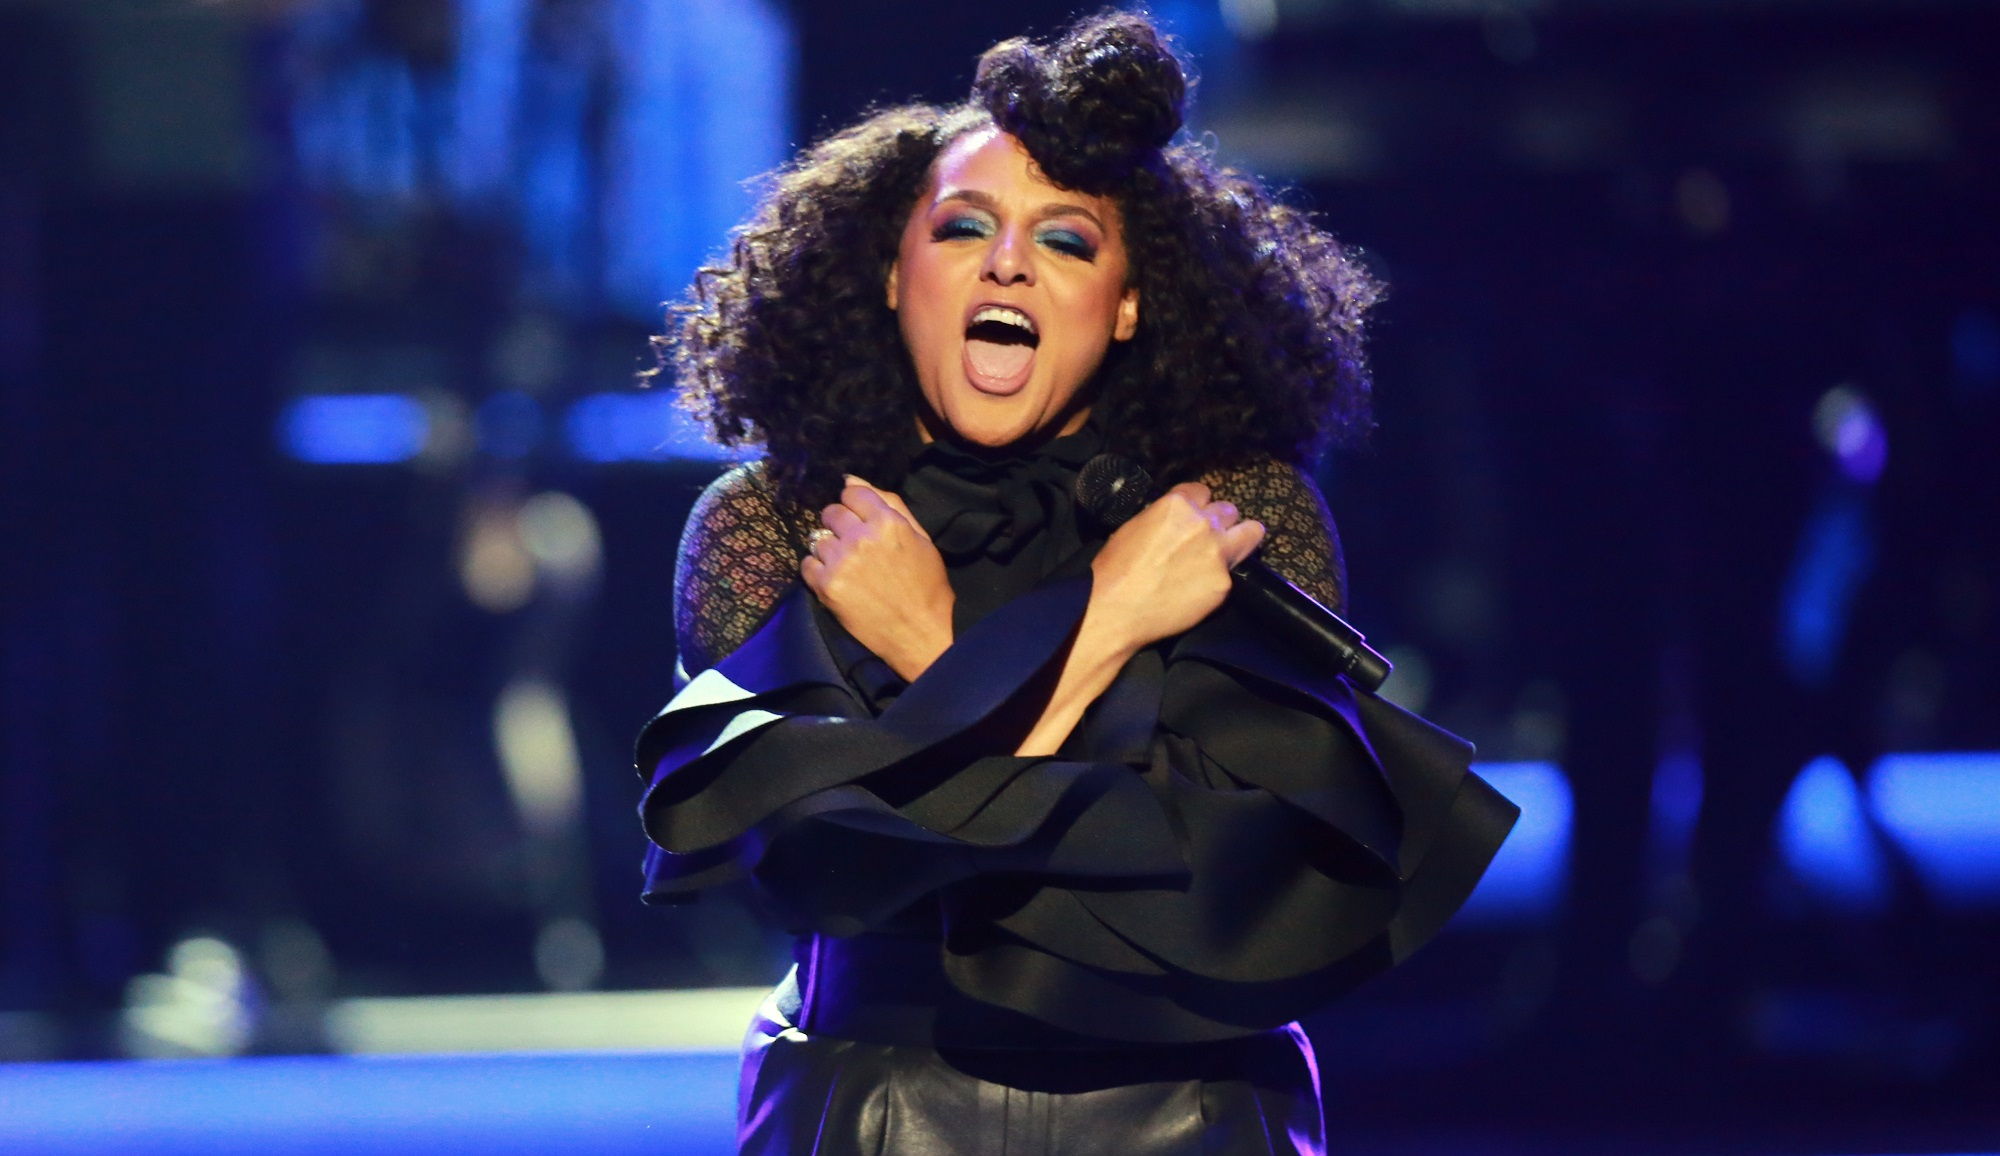 Marsha Ambrosius sold out her first show in the Tralf on Saturday, so a second was added. (Leon Bennett/Getty Images)